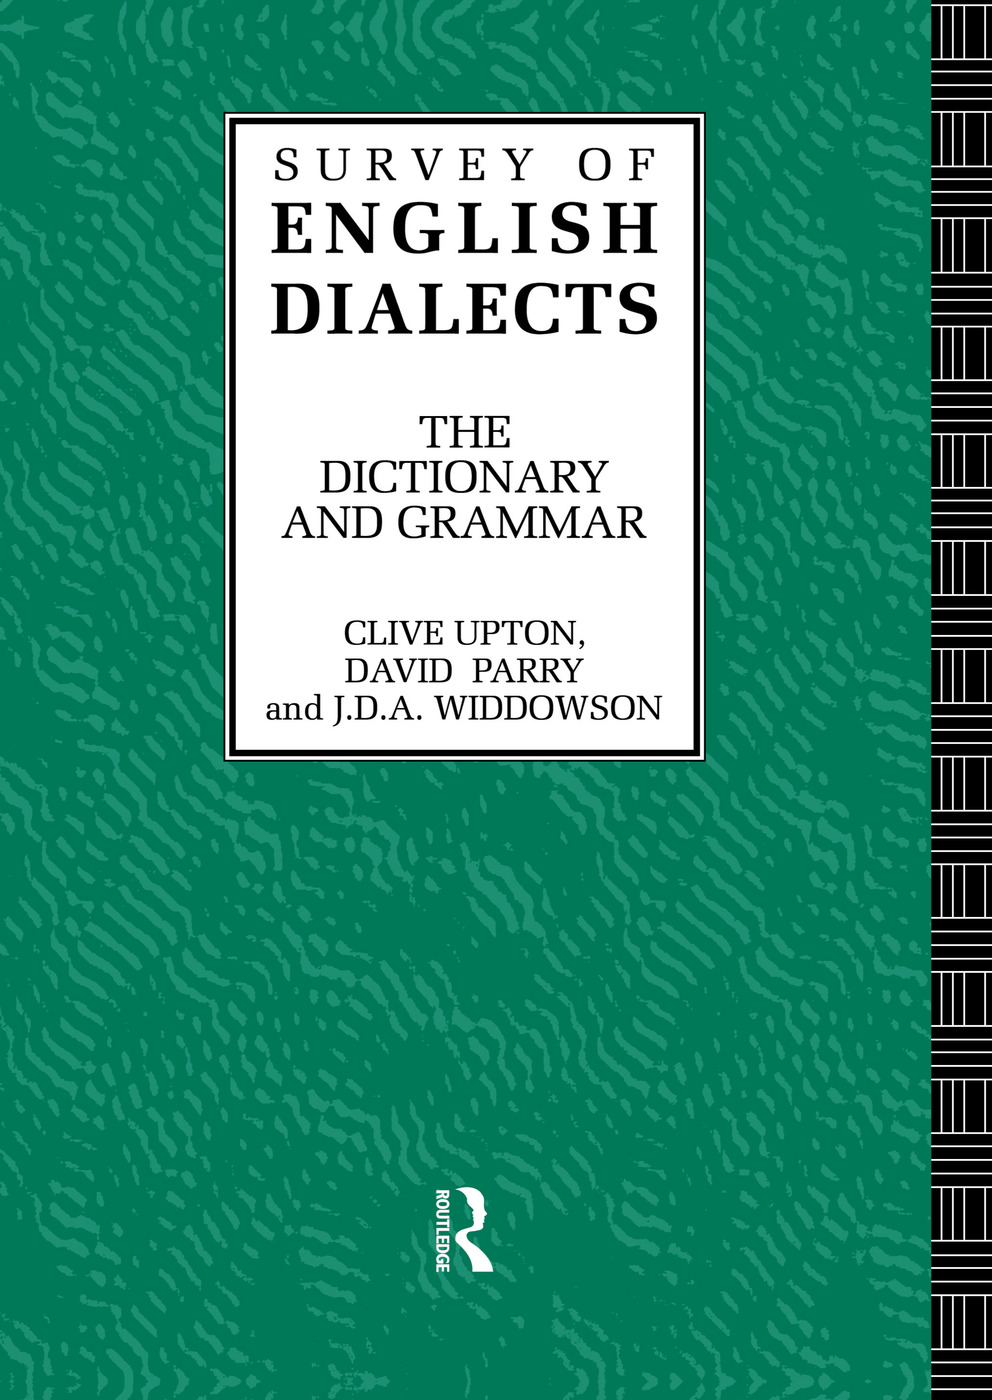 Survey of English Dialects